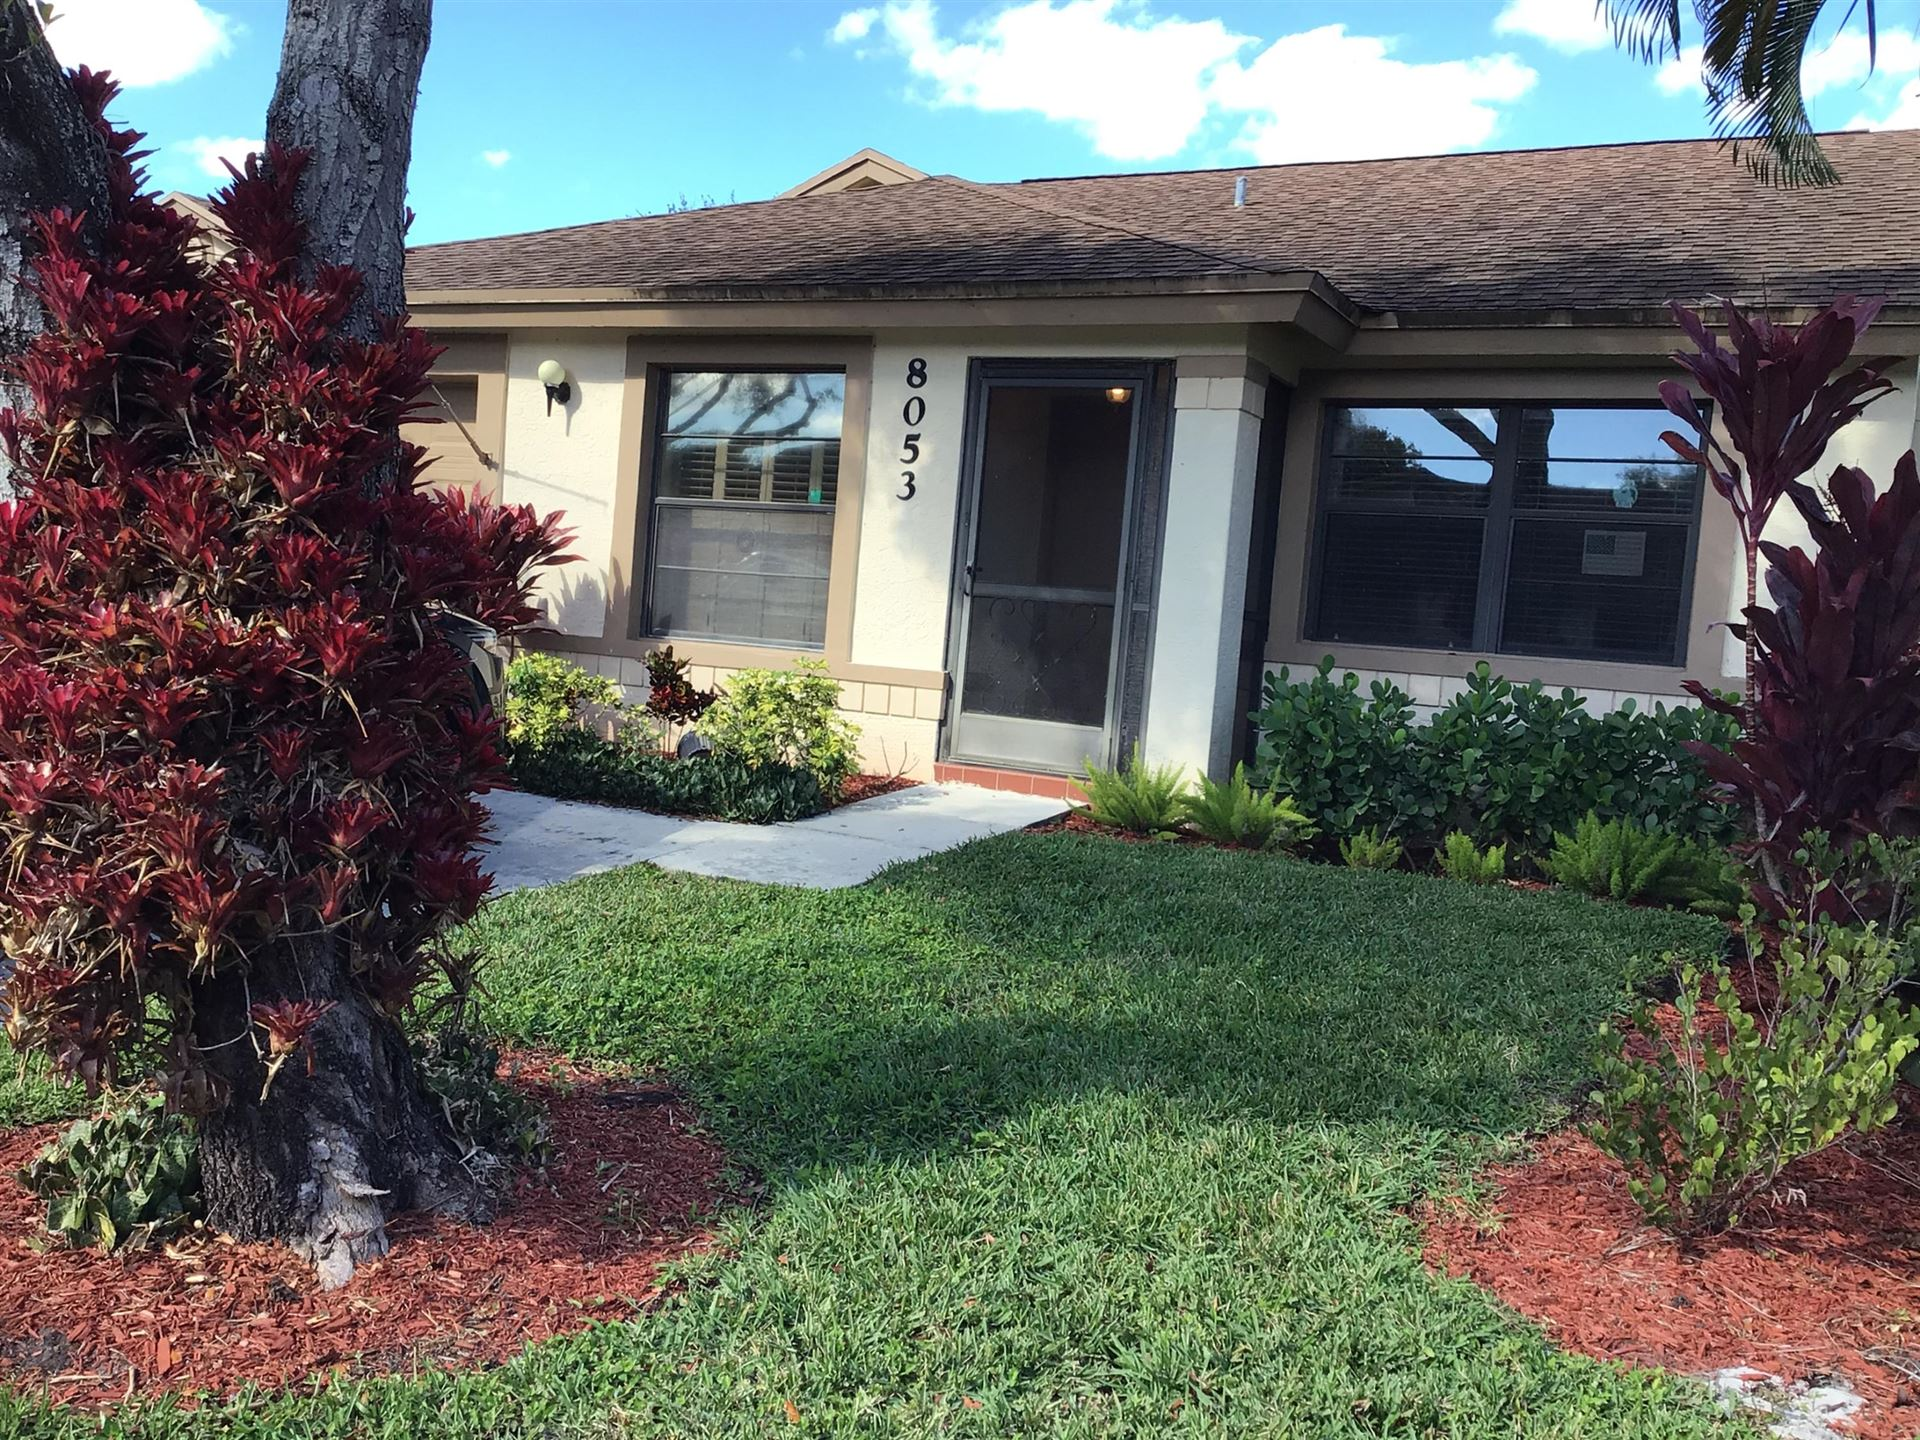 8053 Summerview Terrace, Boca Raton, FL 33496 - #: RX-10685763